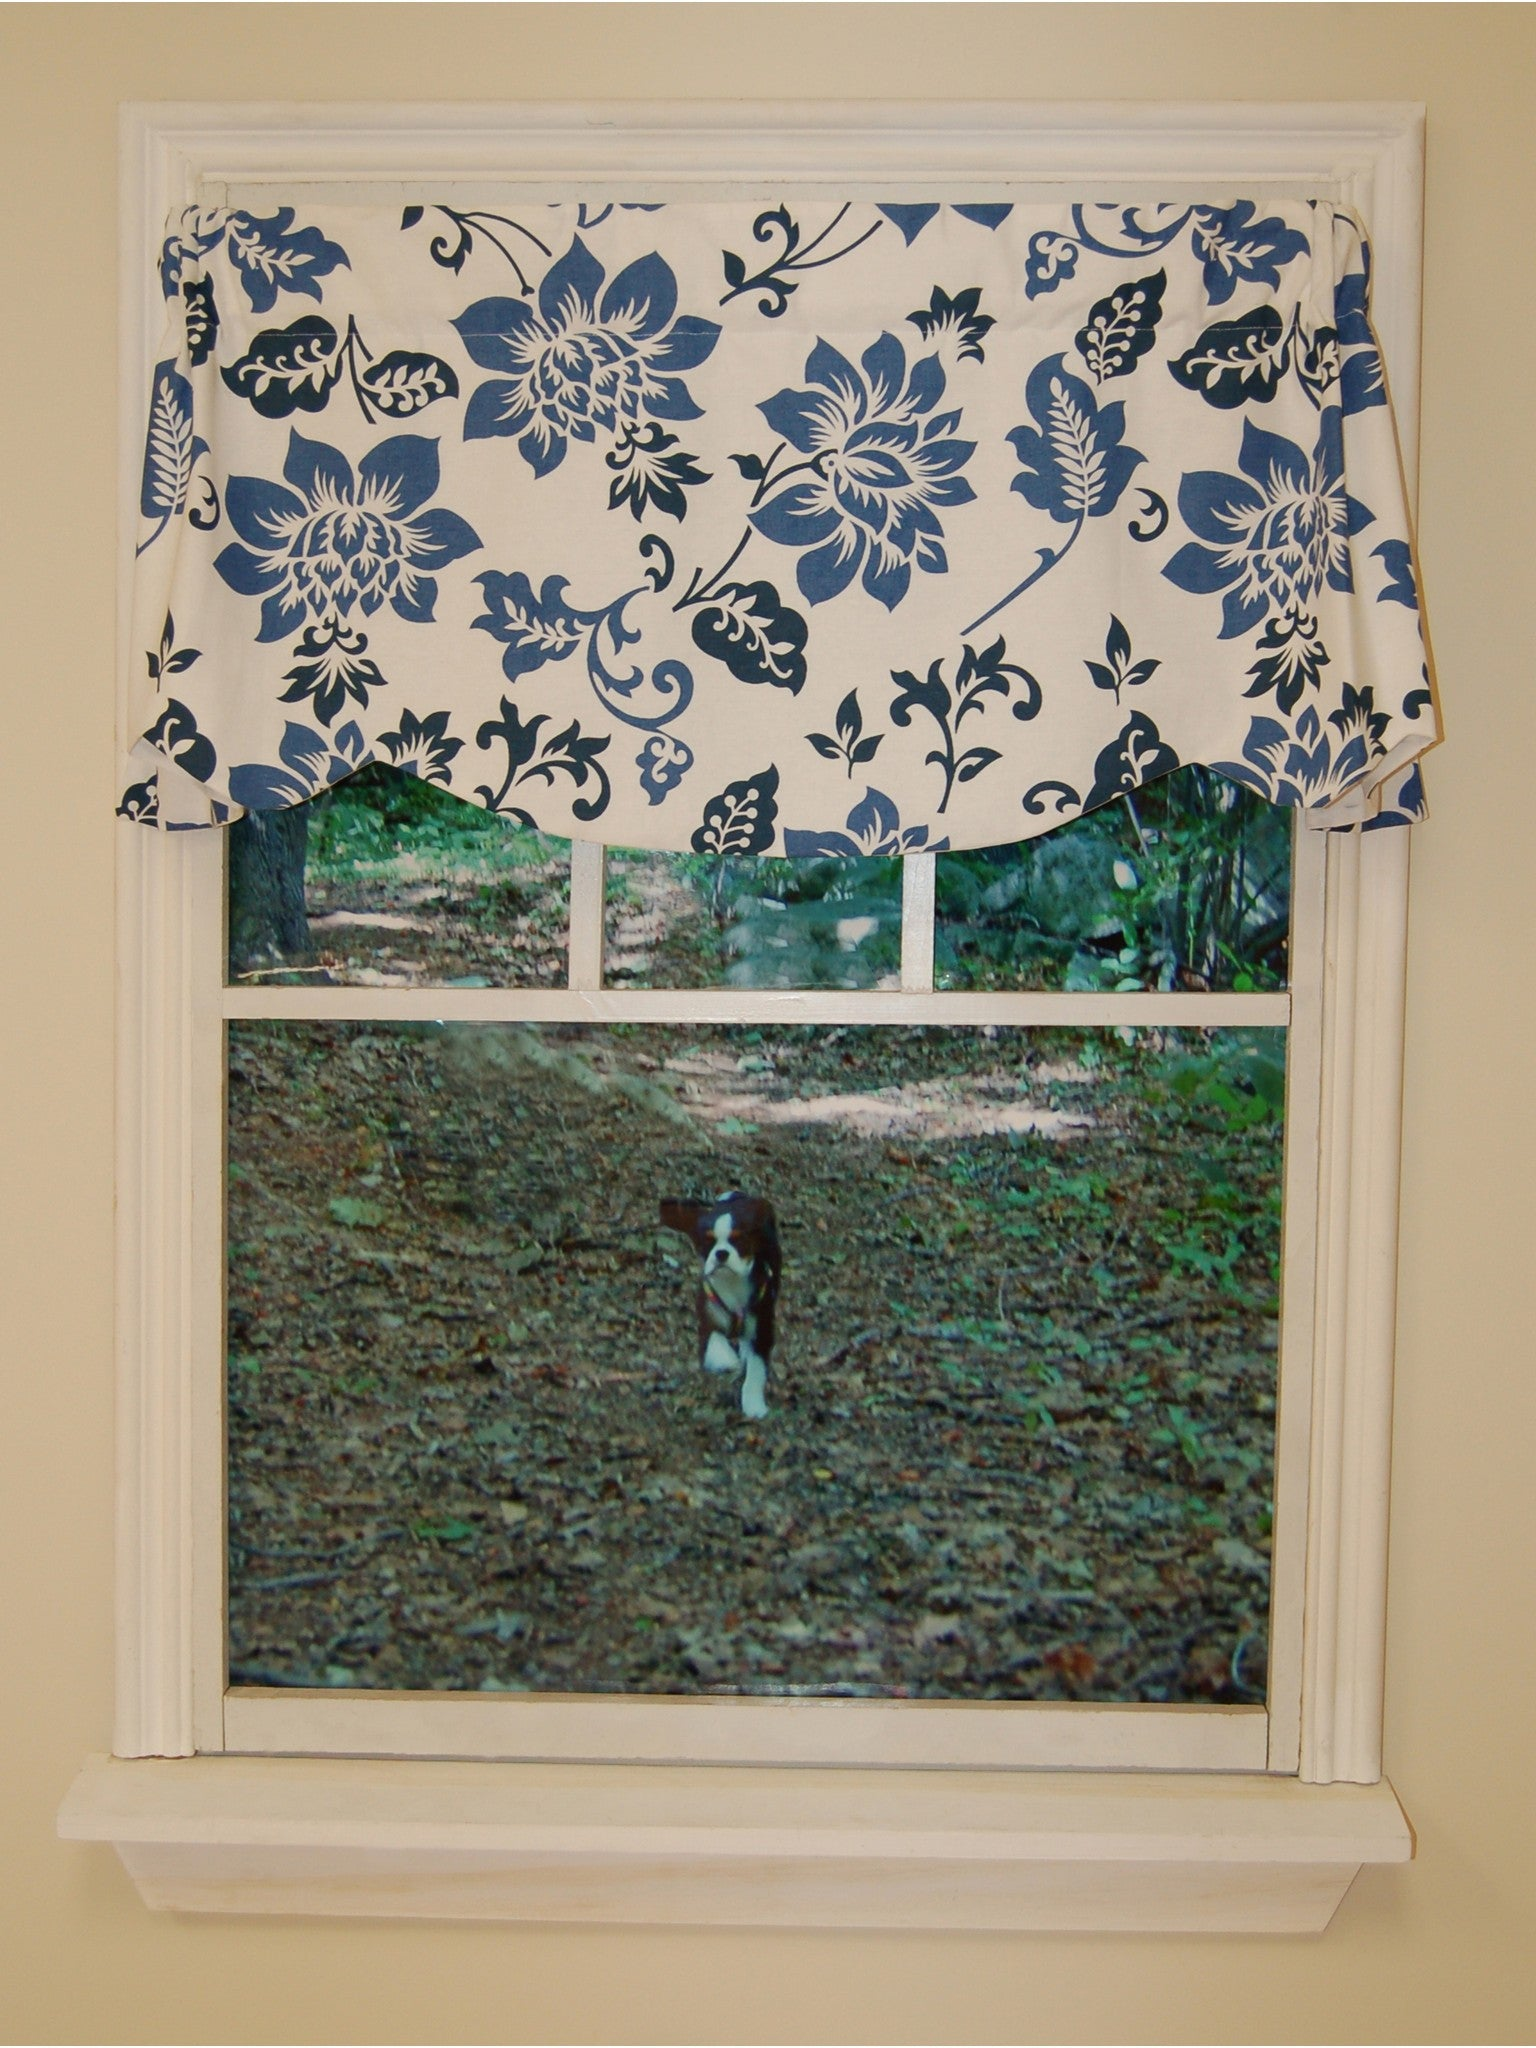 Jacobean Abstract Rod Pocket Valance - Valance  053x015 Delft Blue C26993- Marburn Curtains